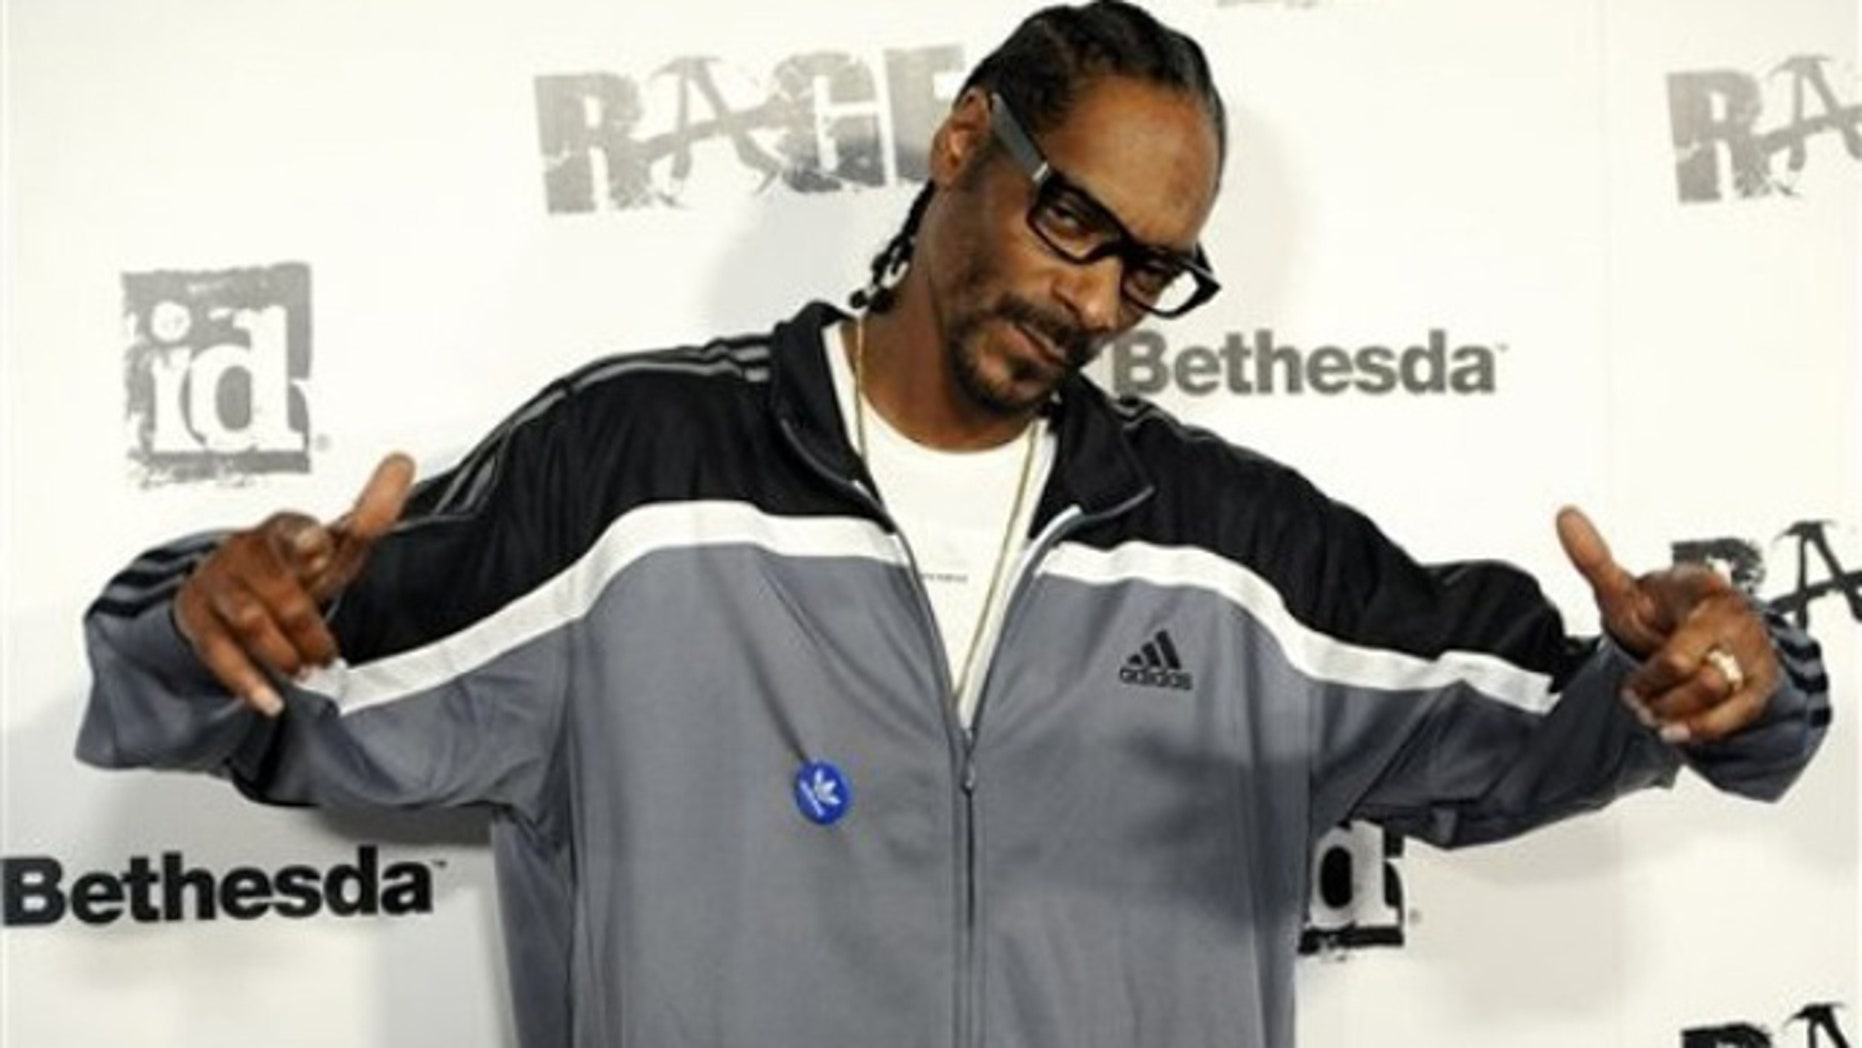 Snoop Dogg is now Snoop Lion: Lamest celebrity nickname